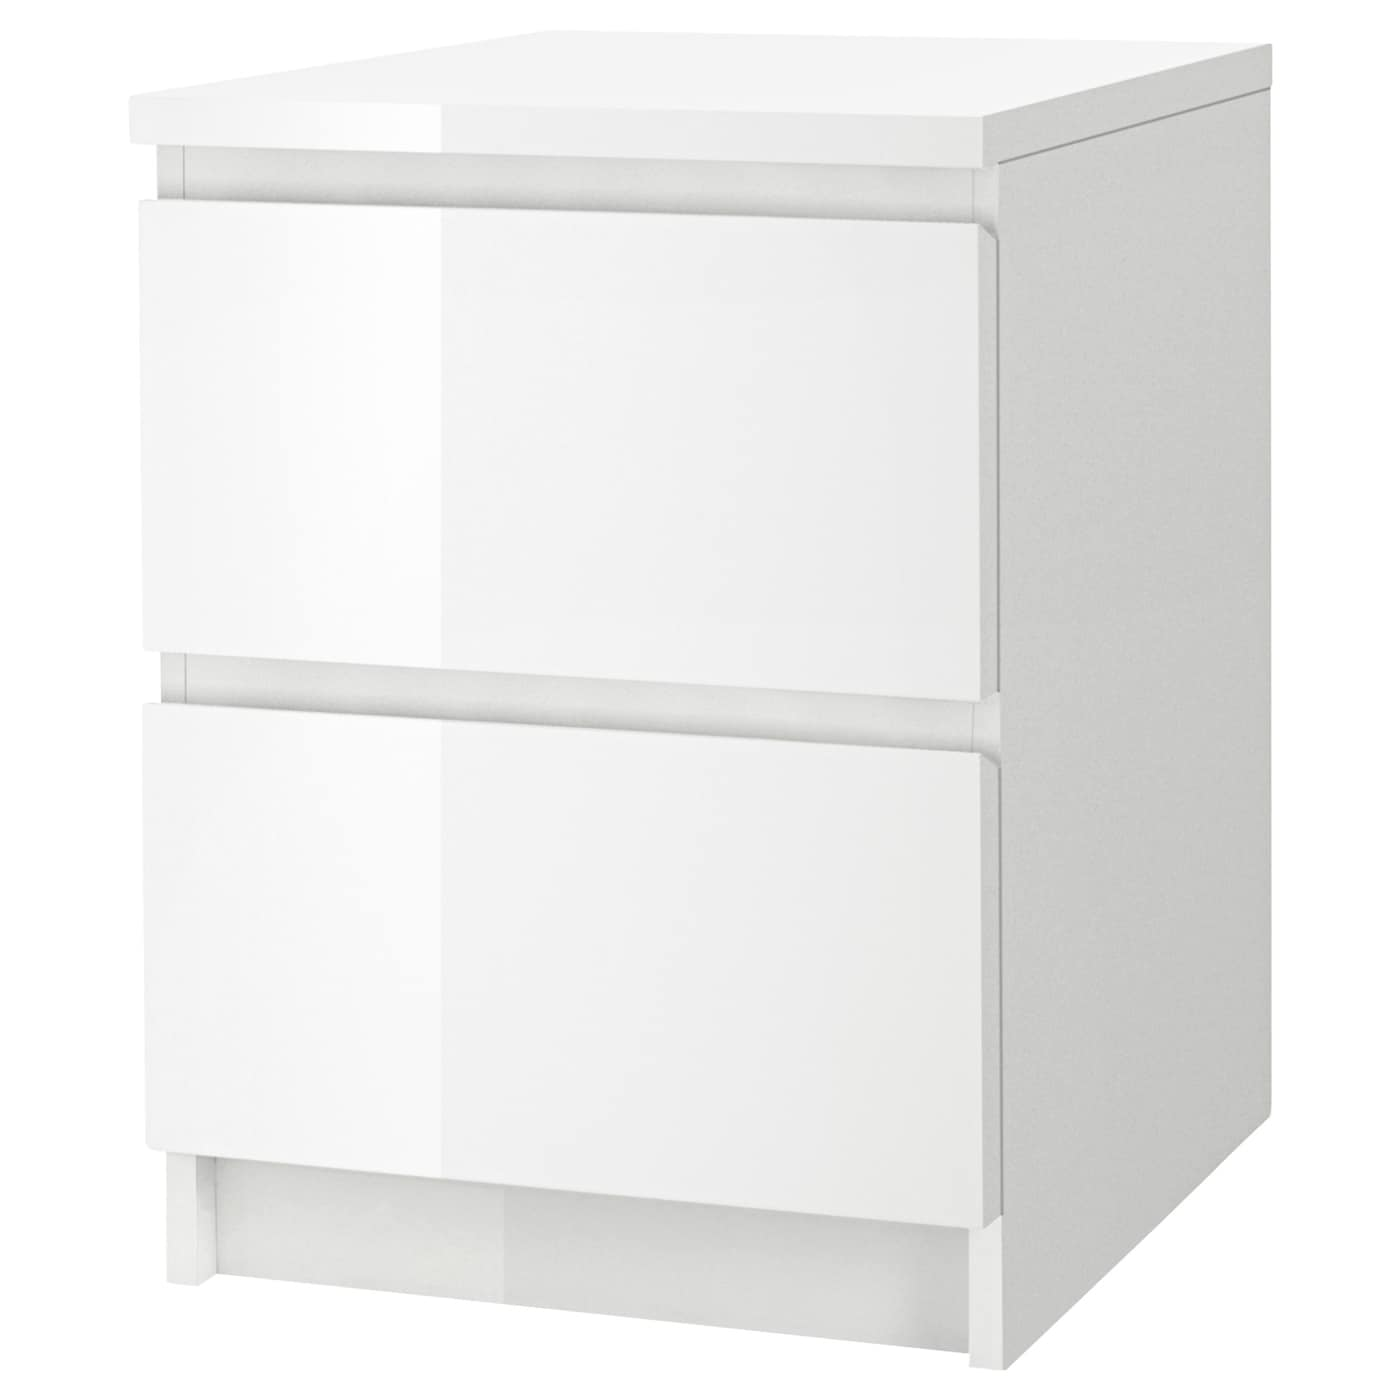 MALM Chest Of 2 Drawers White High Gloss 40x55 Cm IKEA